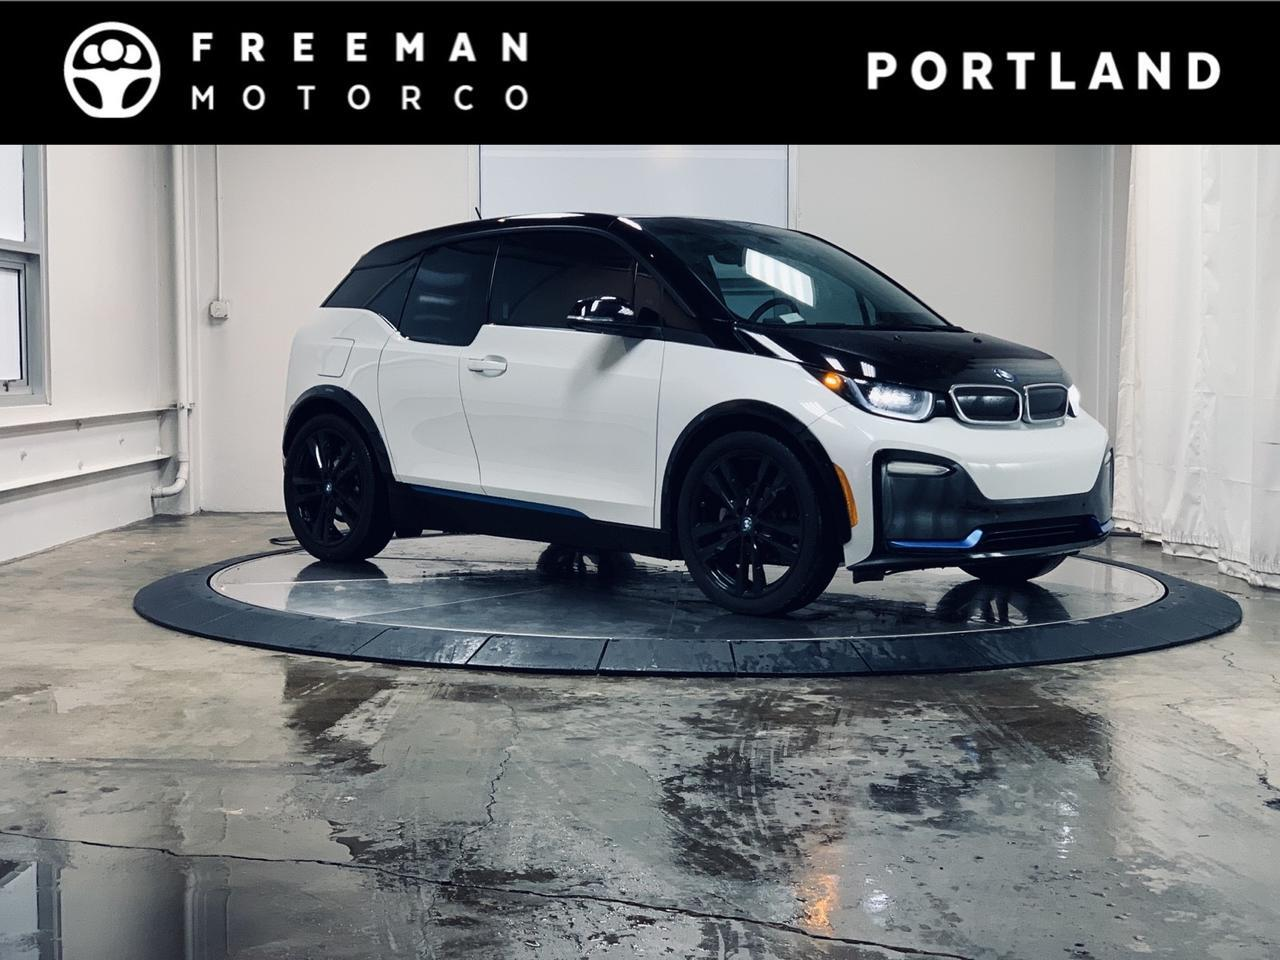 2018 BMW i3 S Deka World Htd Seats Fast Charging Backup Cam Portland OR